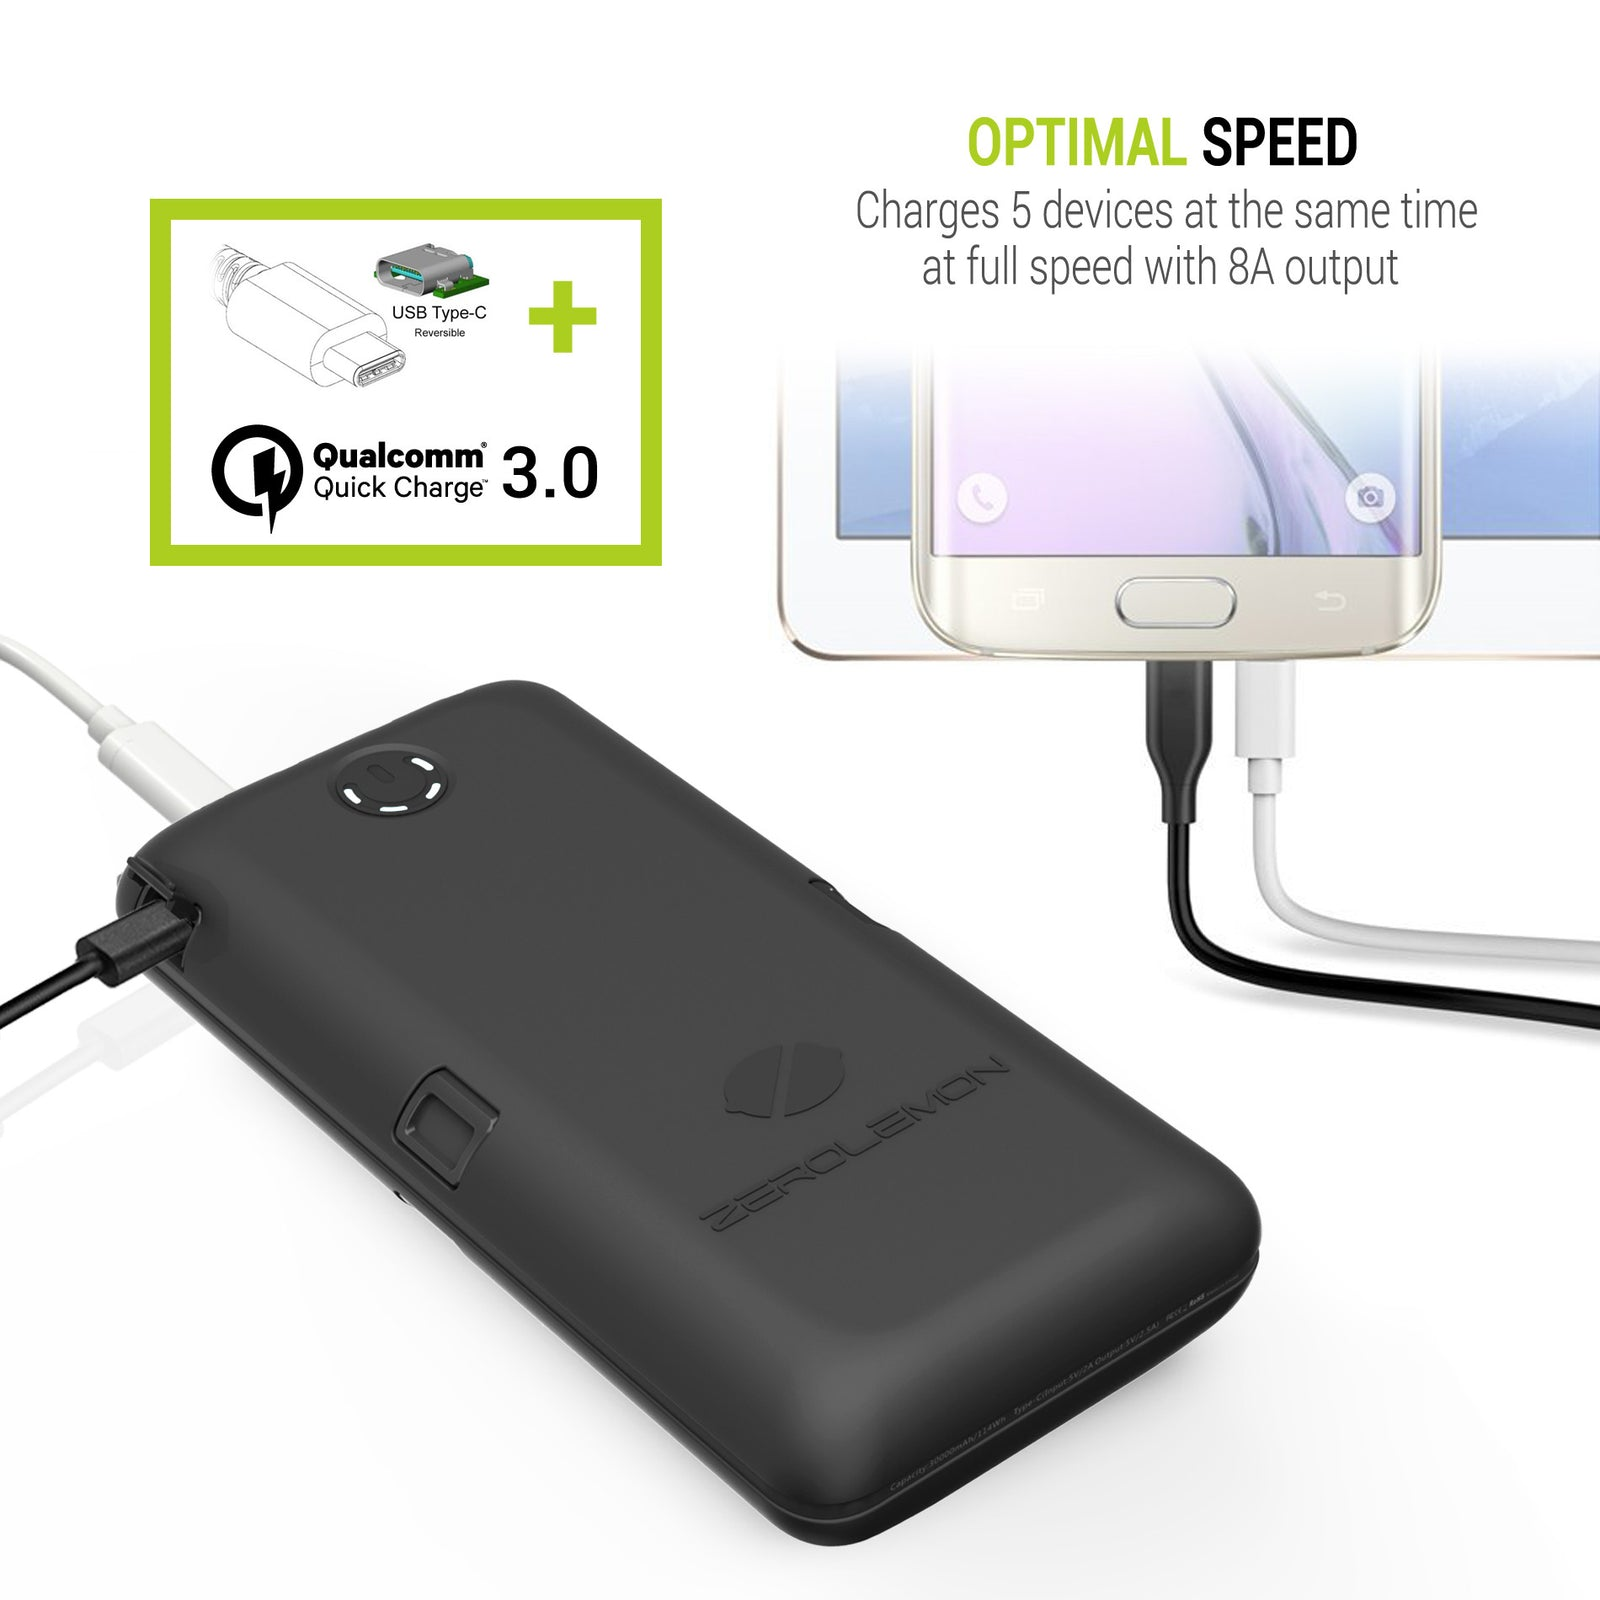 ToughJuice 30000mAh QC 3.0 External Battery Charger [Shipping to US Only]